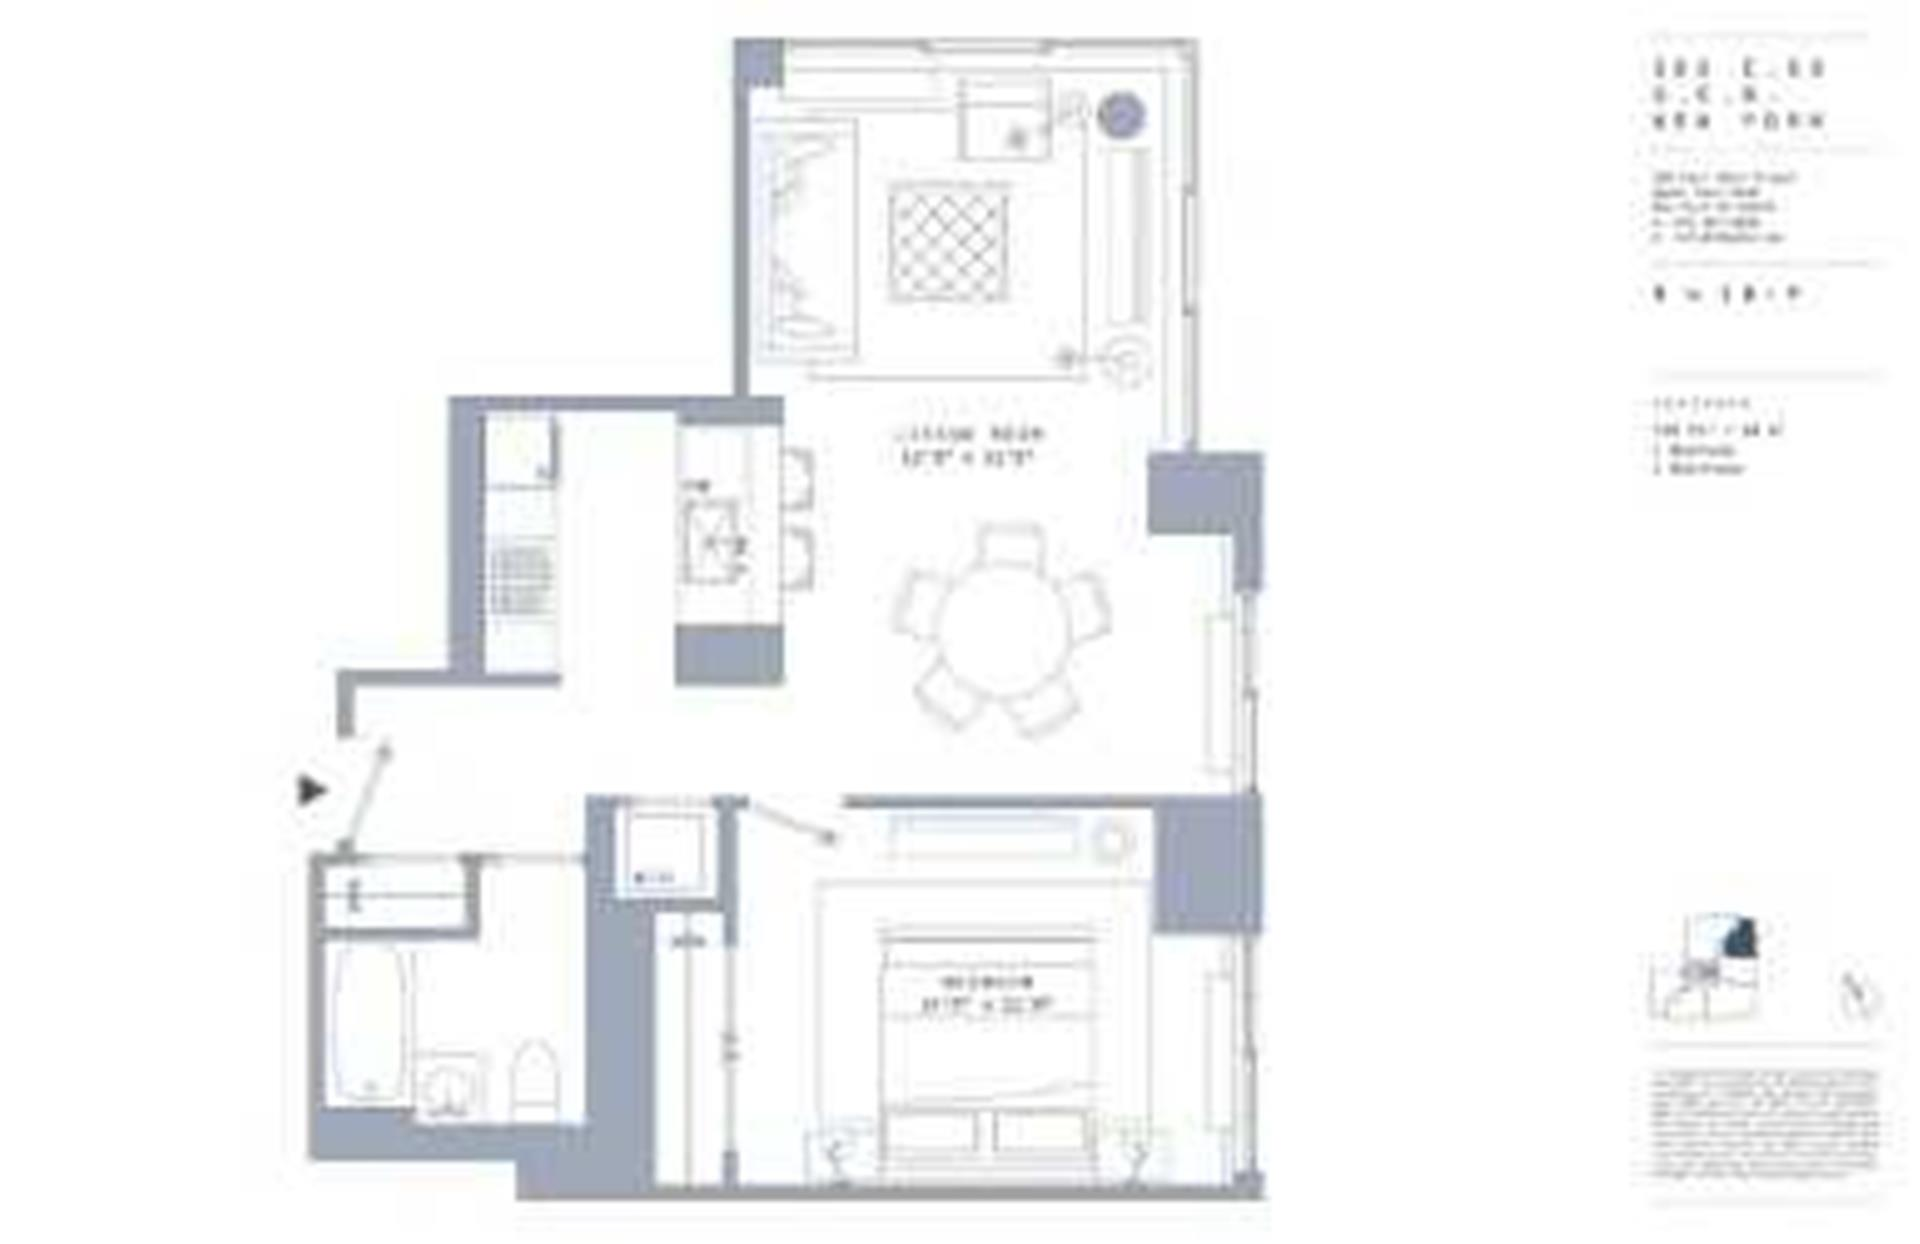 Floor plan of 389 East 89th St, 16F - Upper East Side, New York